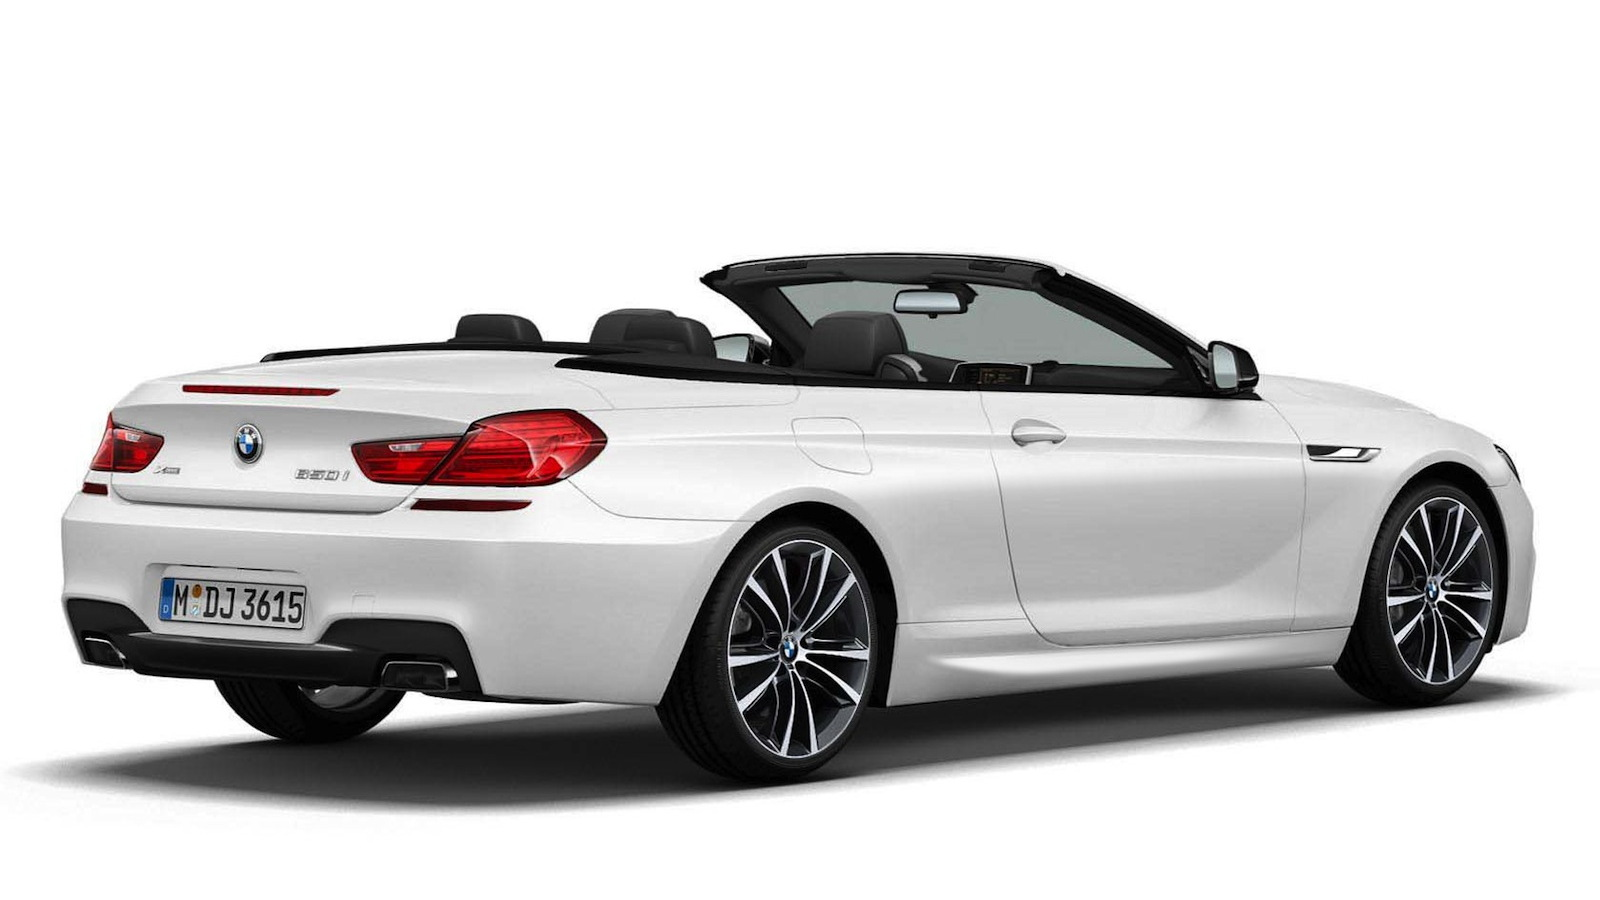 2014 BMW Frozen Brilliant White Edition 6-Series Convertible - image: BMW